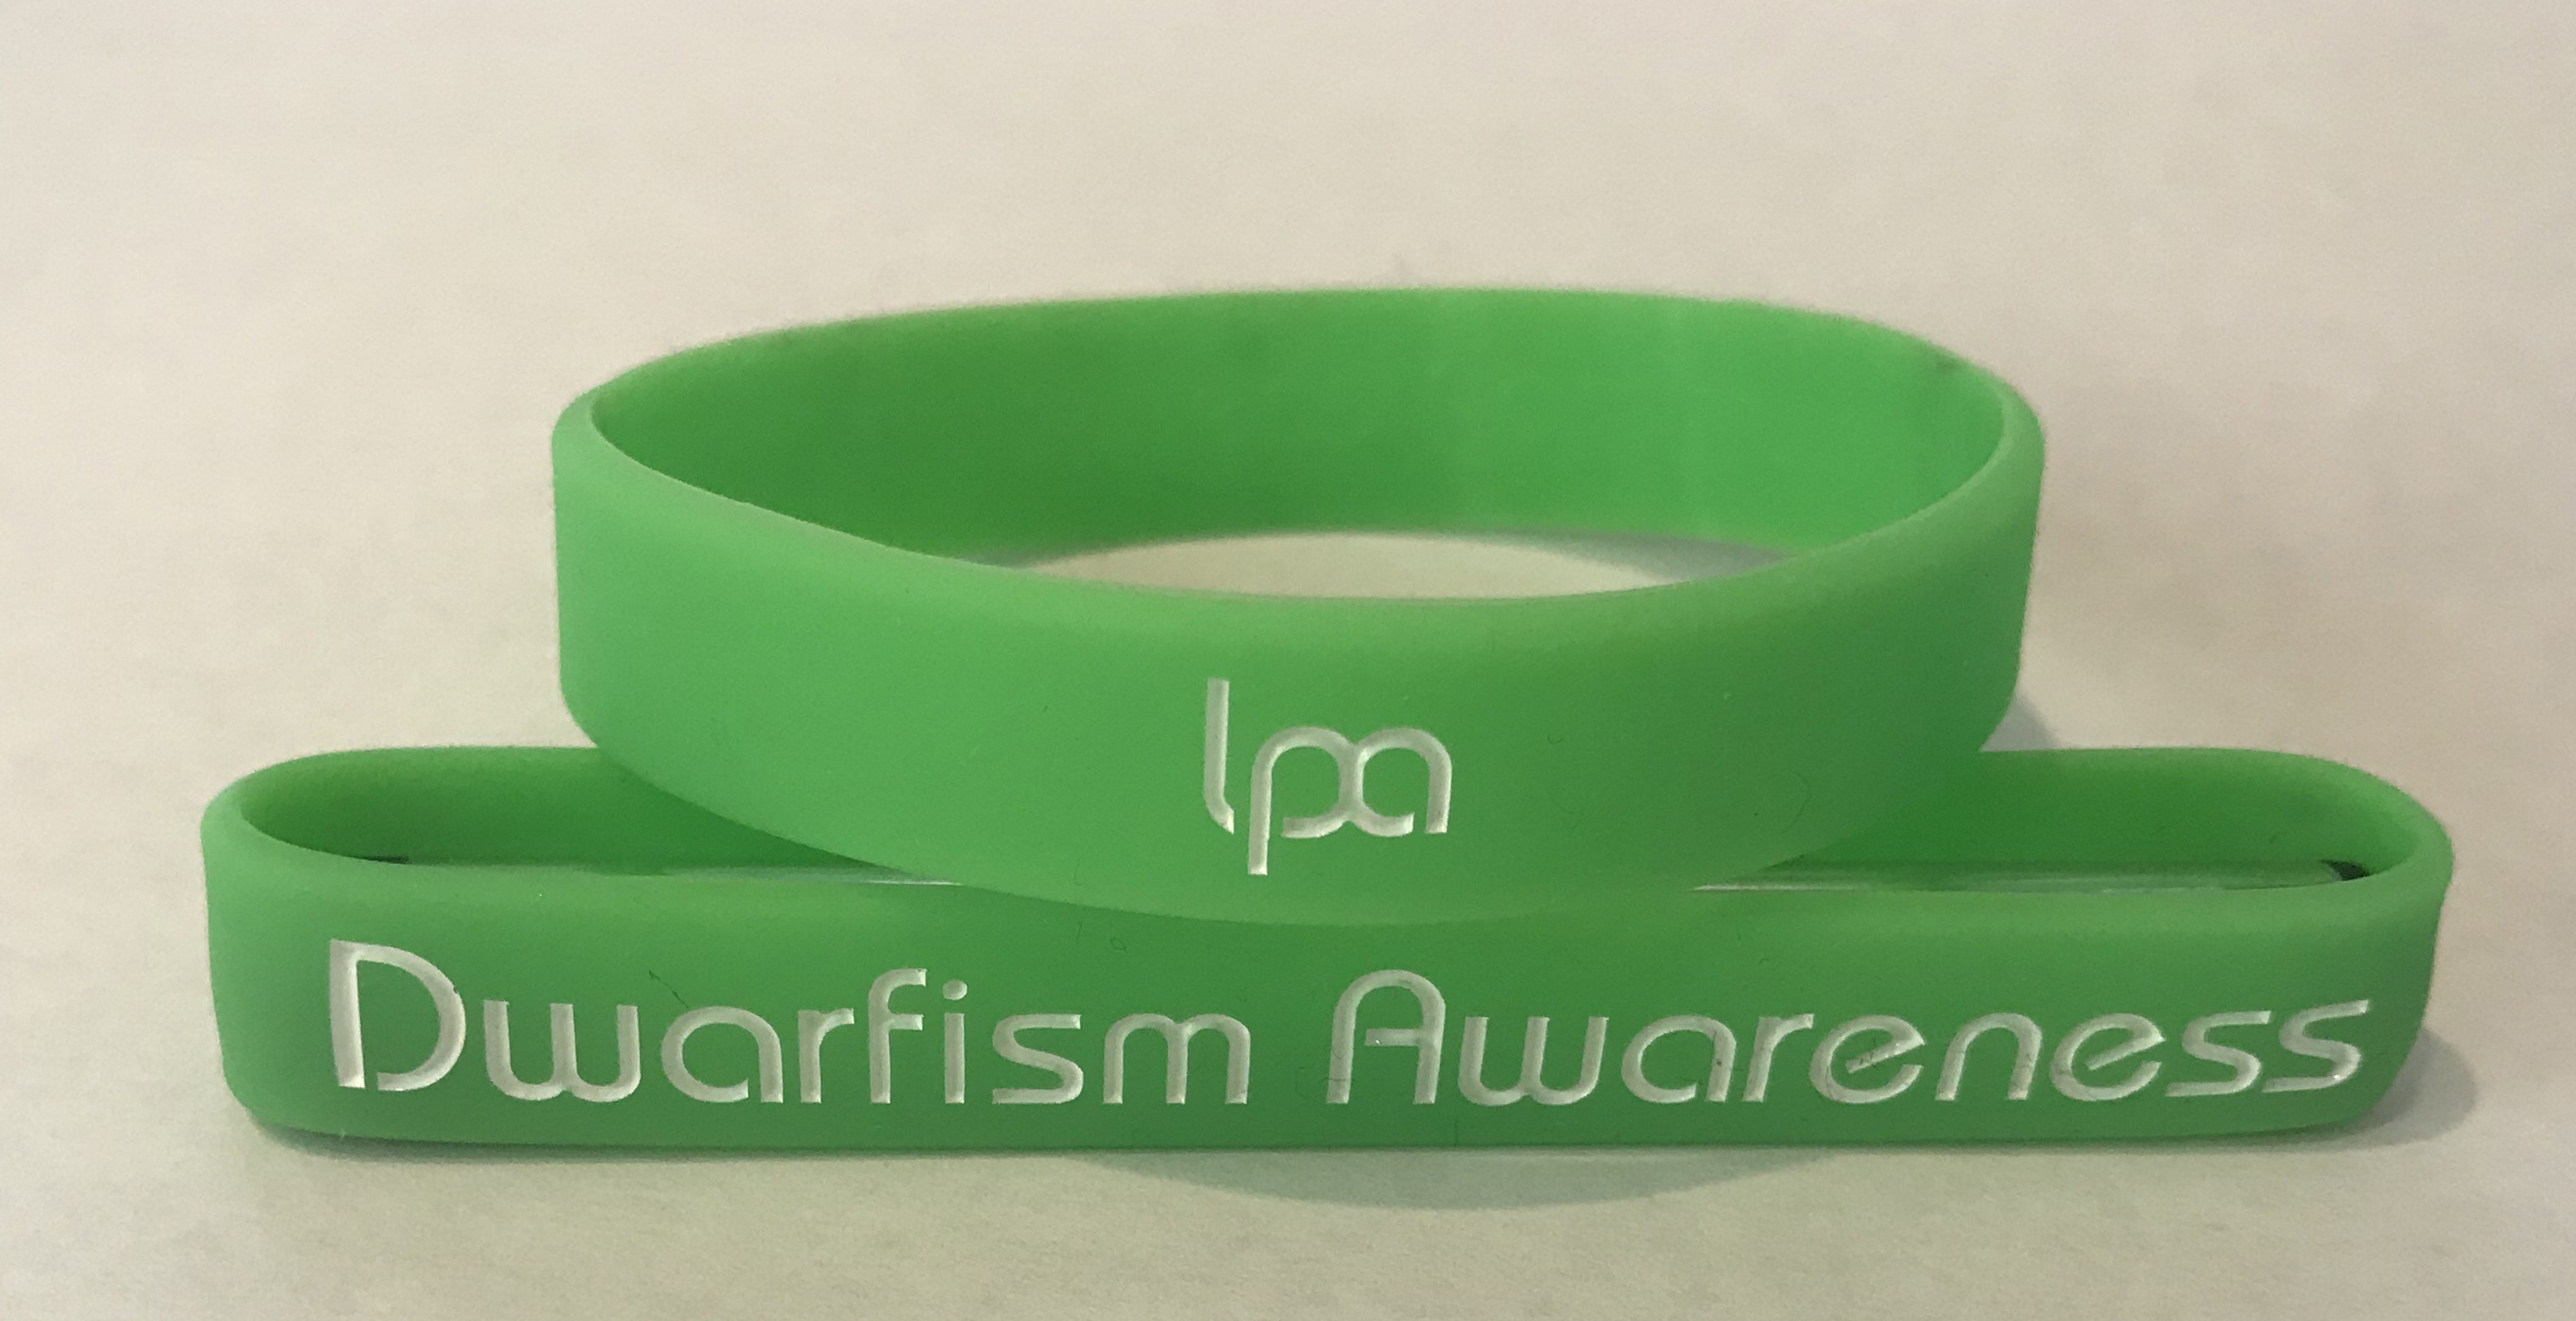 Dwarfism Awareness Wristbands